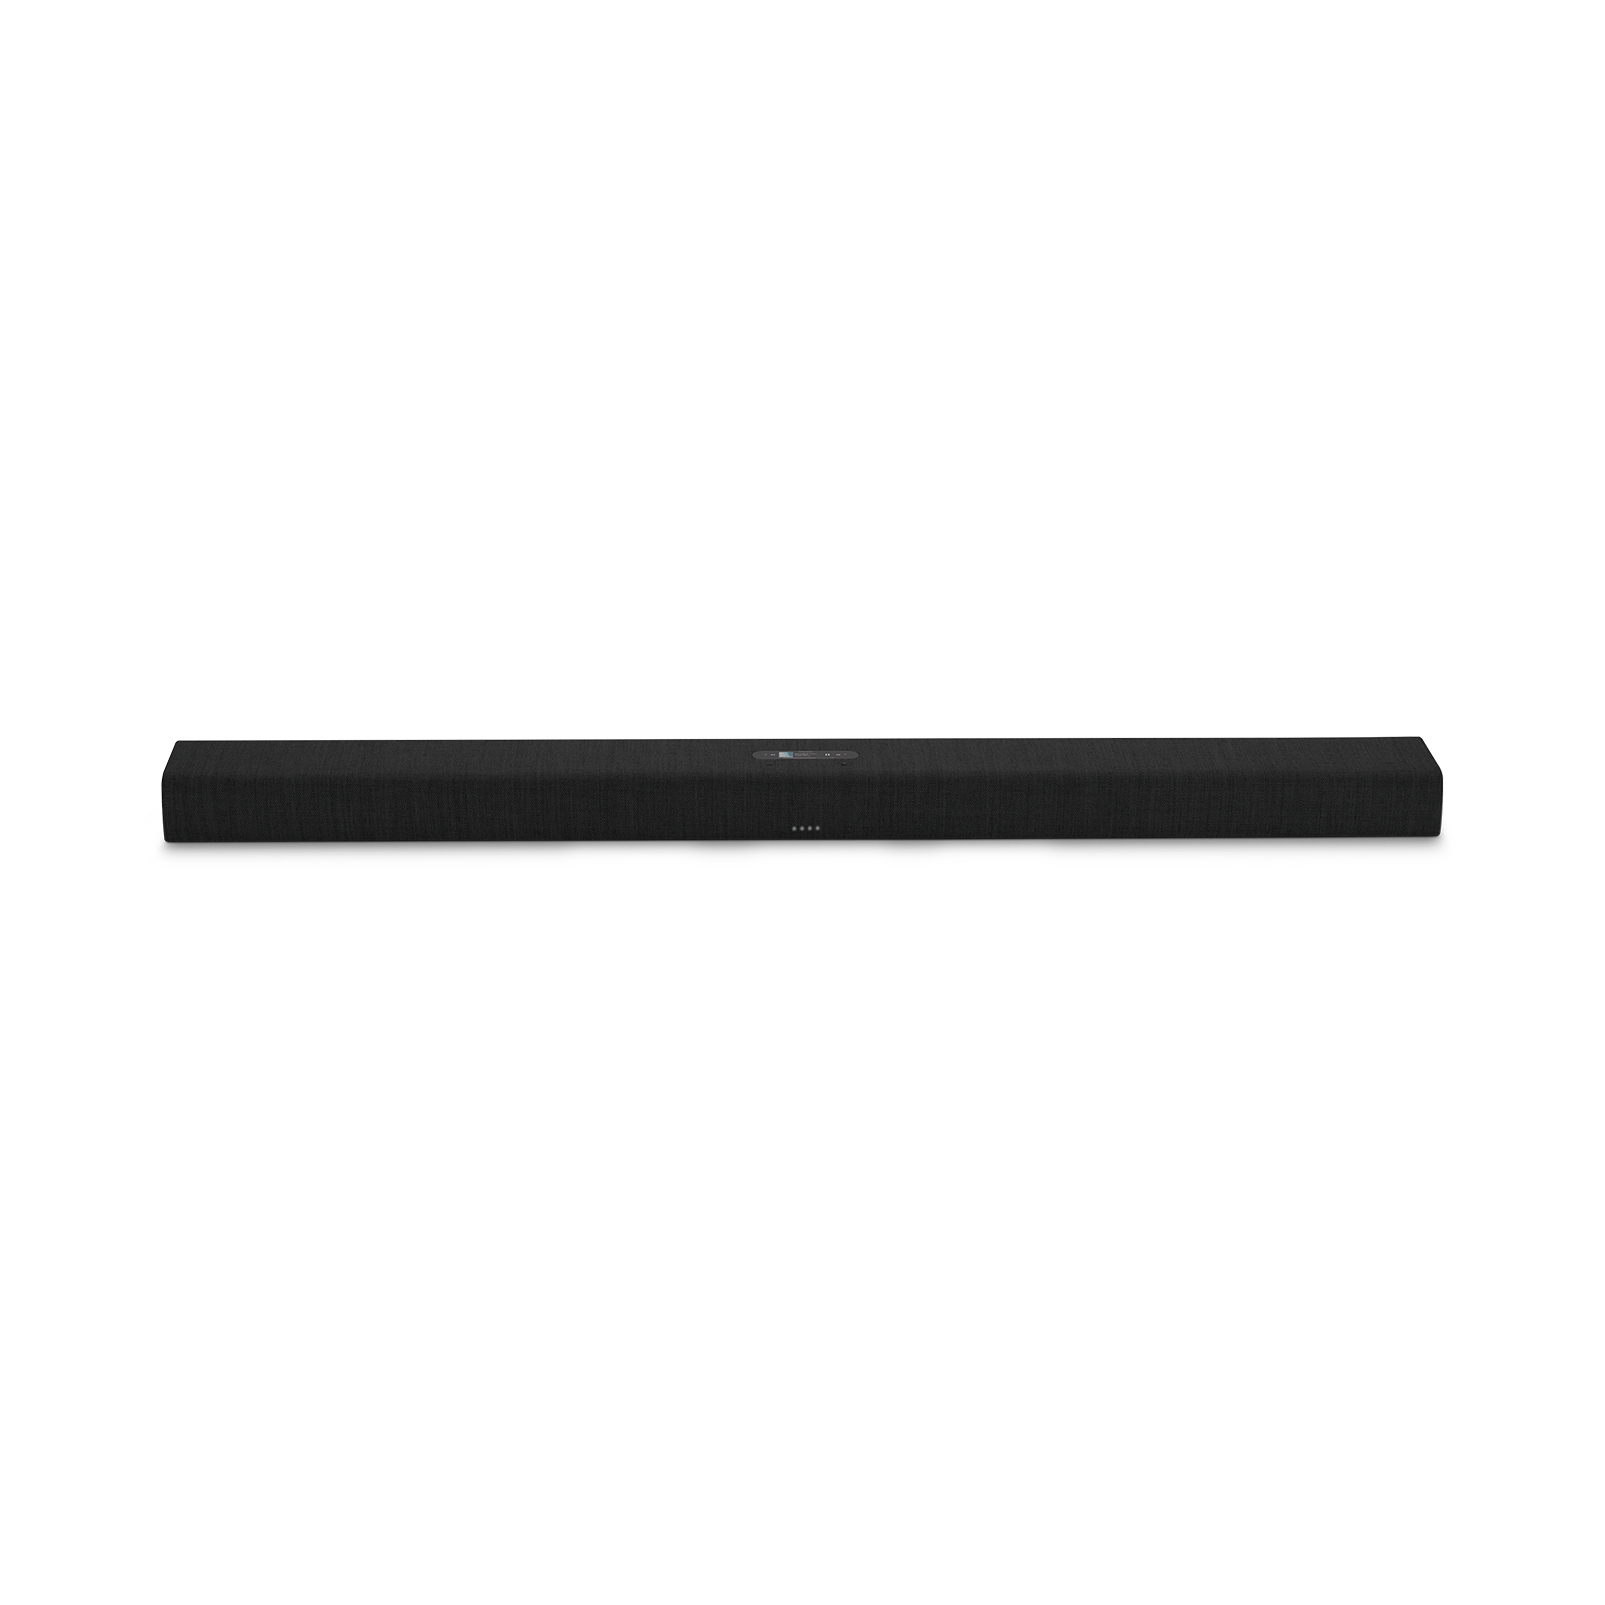 Harman Kardon Citation Bar - Black - The smartest soundbar for movies and music - Front